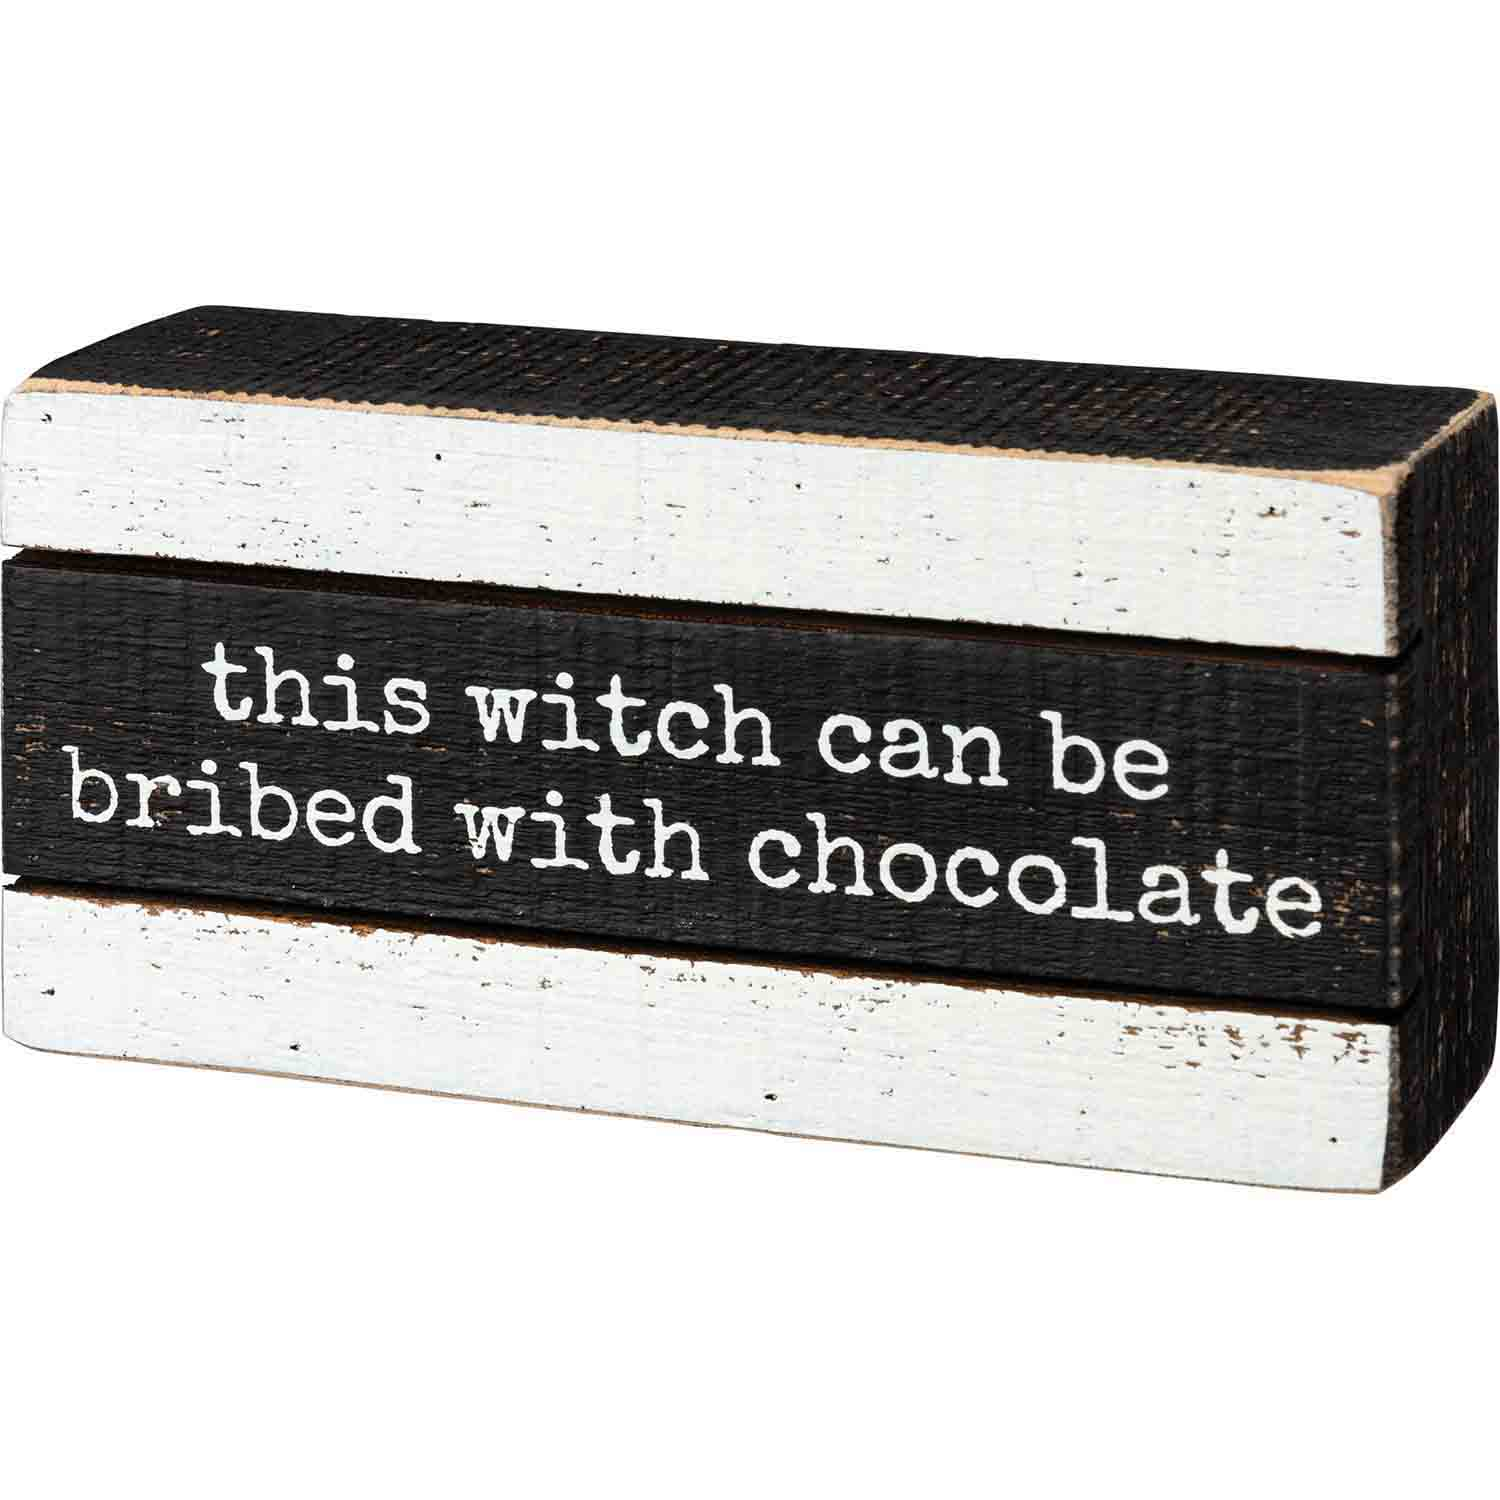 This Witch Can Be Bribed Box Sign